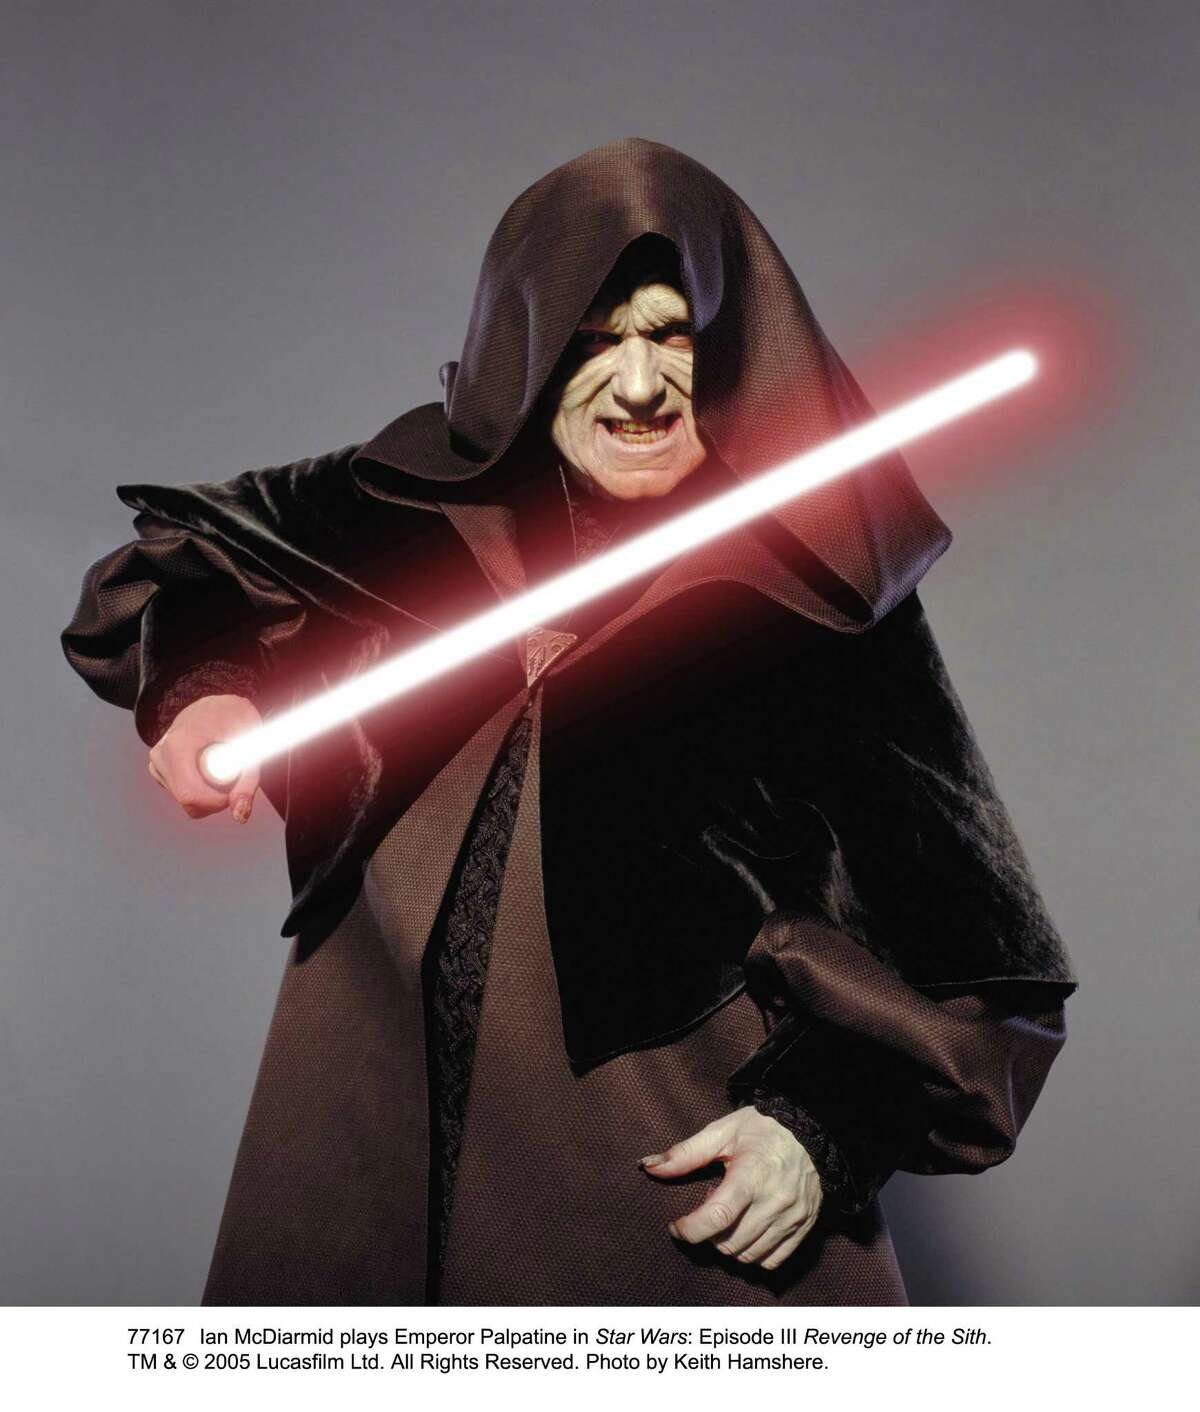 Ian McDiarmid Seen here as Emperor Palpatine from